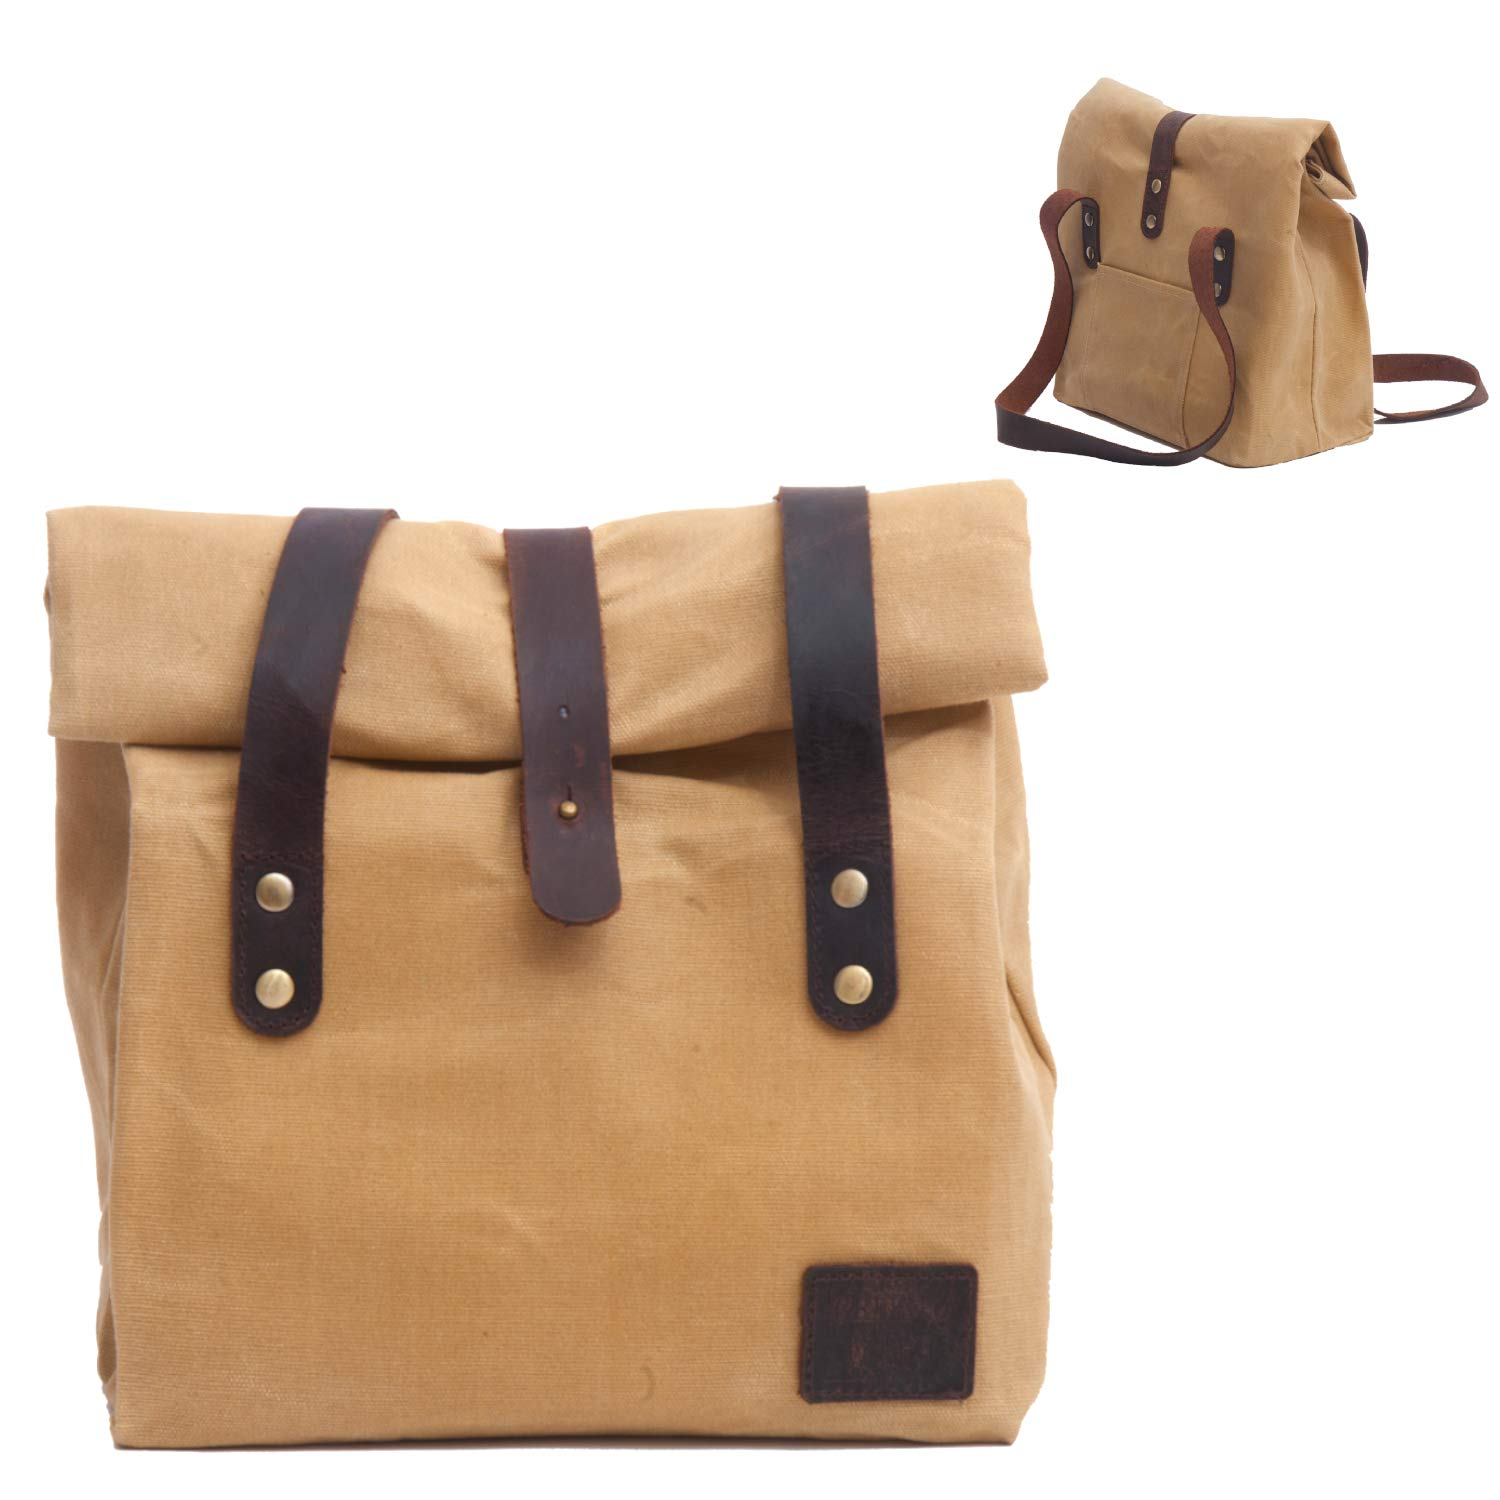 Natural Insulated Unique Waterproof Lunch Bag for Women | Reusable Waxed Canvas Lunch Box | Picnic Bag | Work Bag for All Ages | Take Your Healthy and Fresh Lunch with Our Light Weight Lunch Bag.